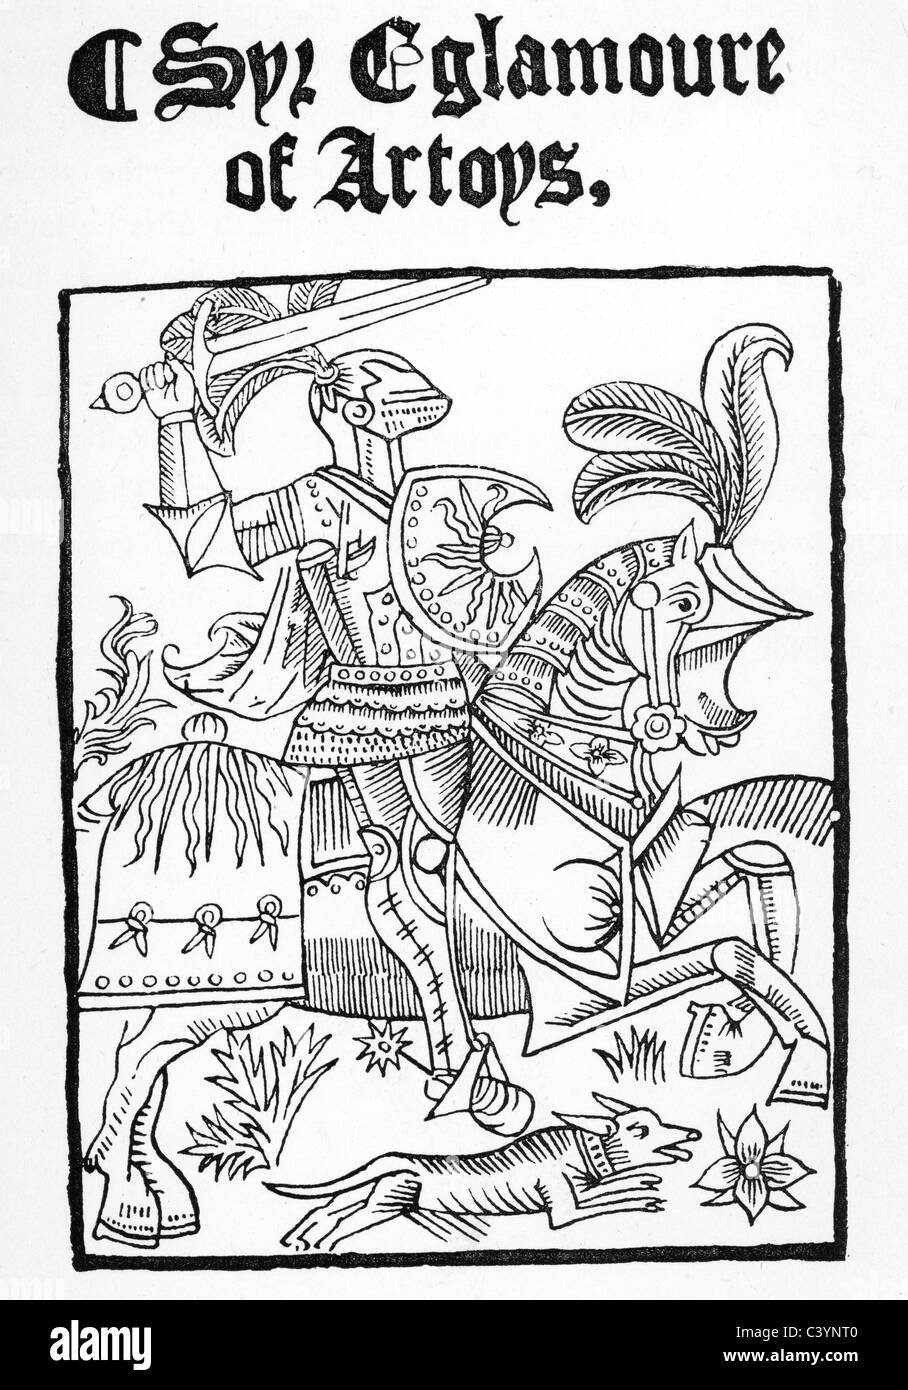 medieval woodcut showing sir eglamour of artois a middle english